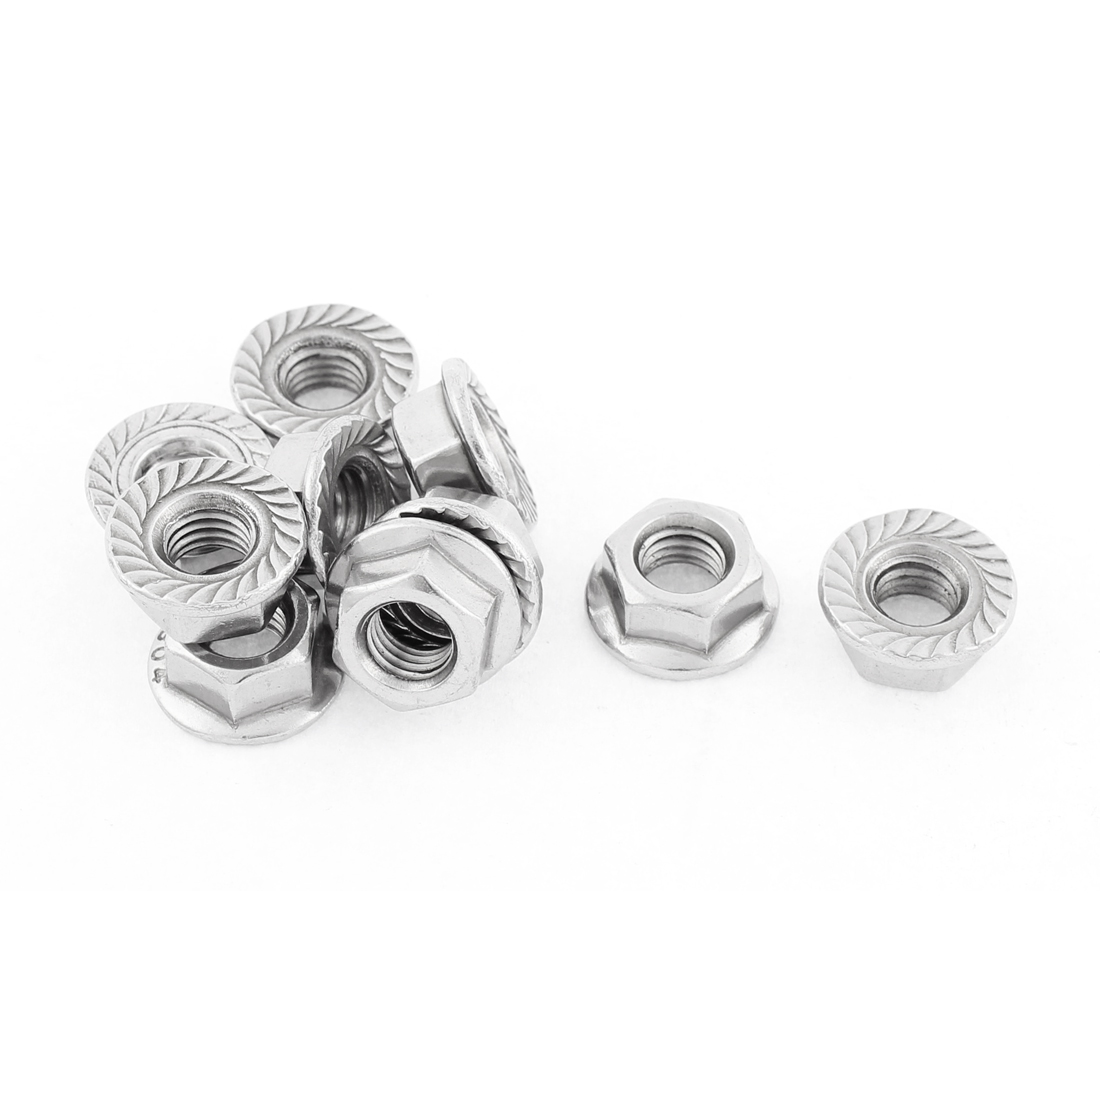 M8 Thread Dia Stainless Steel Hex Hexagon Flange Lock Nuts 10pcs